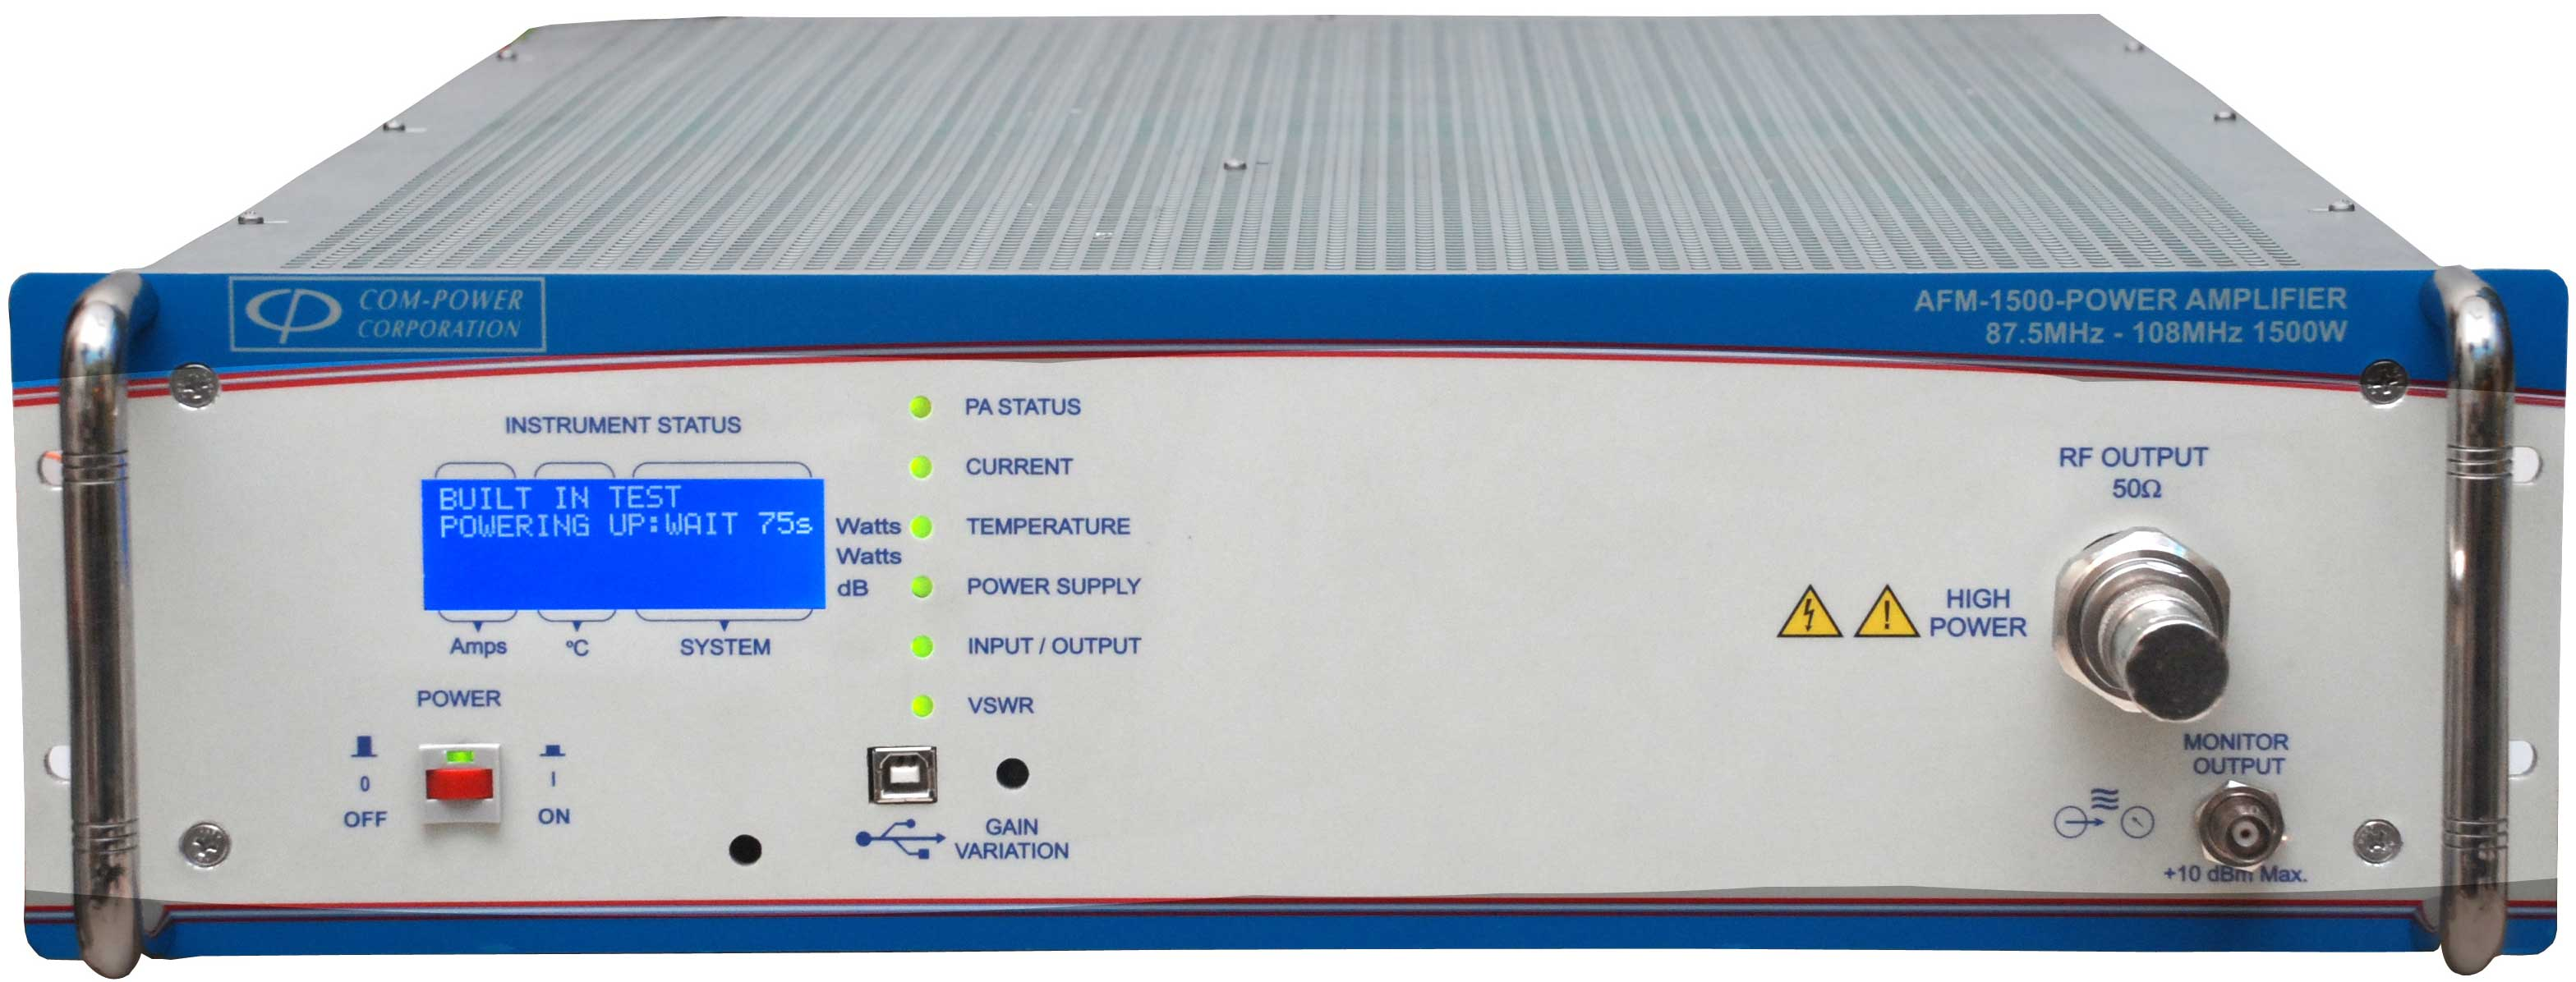 AFM-1500 - Com-Power Power Amplifiers